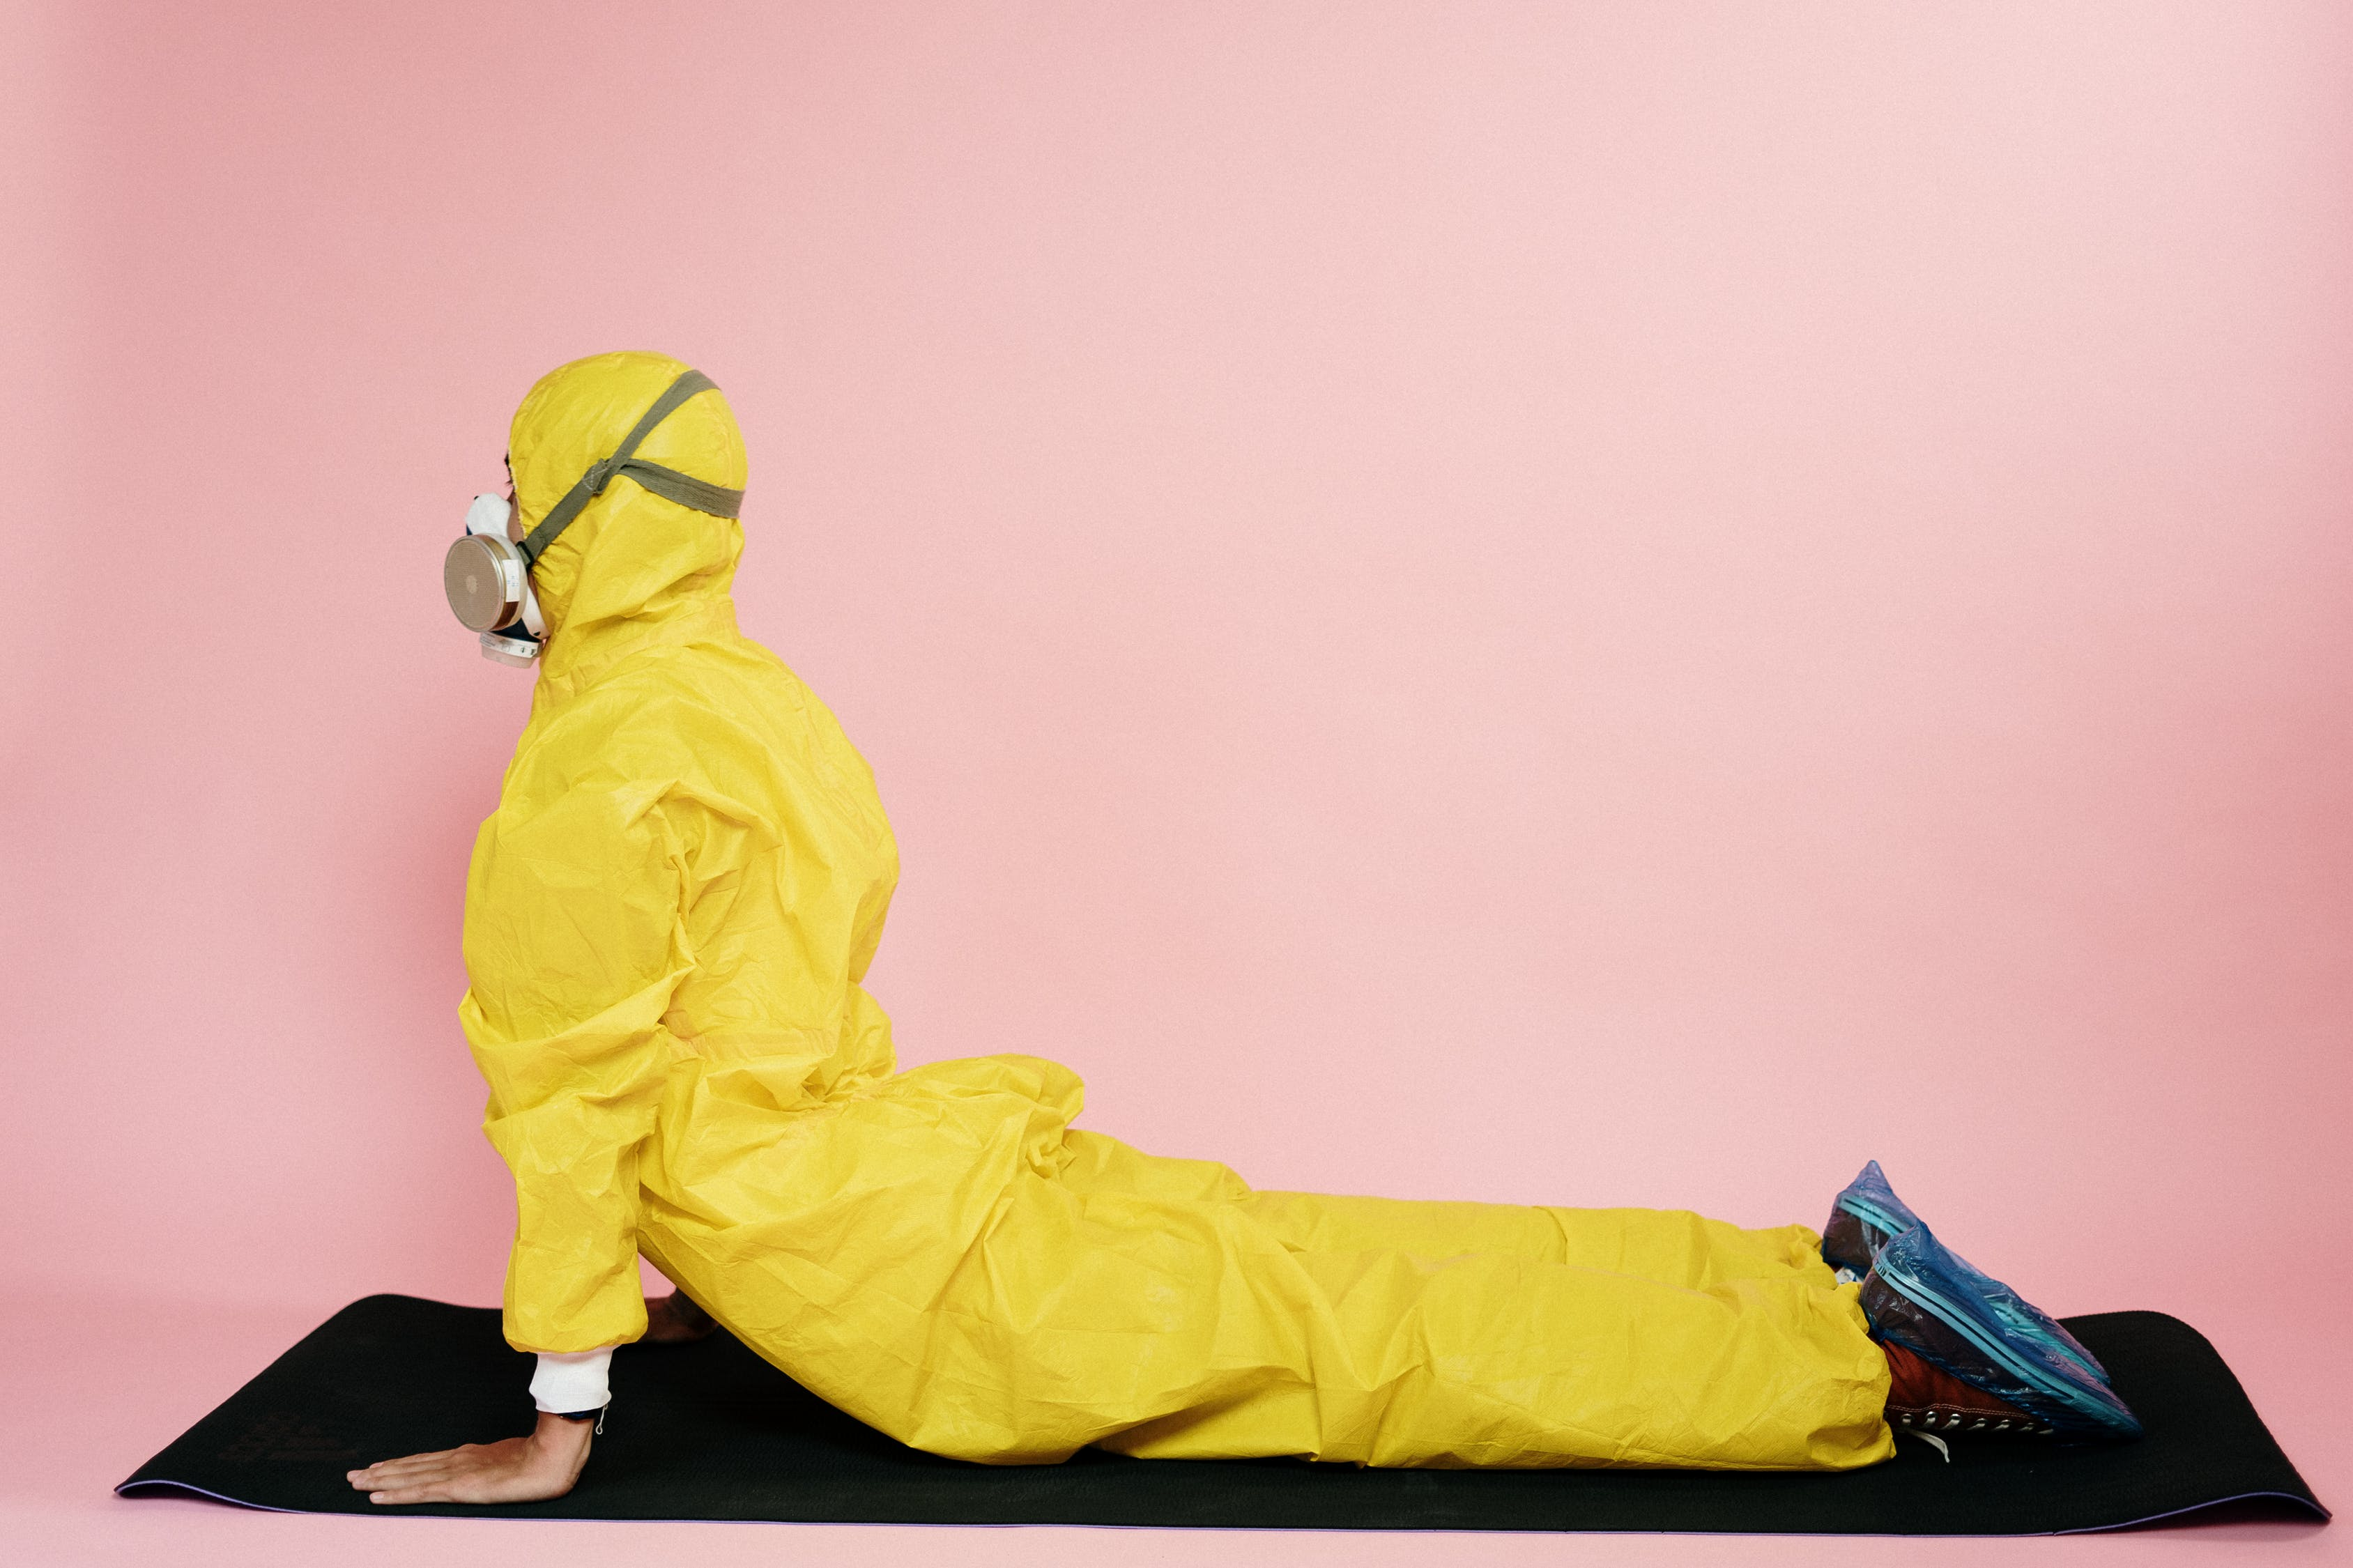 Man In Yellow Protective Suit Stretching